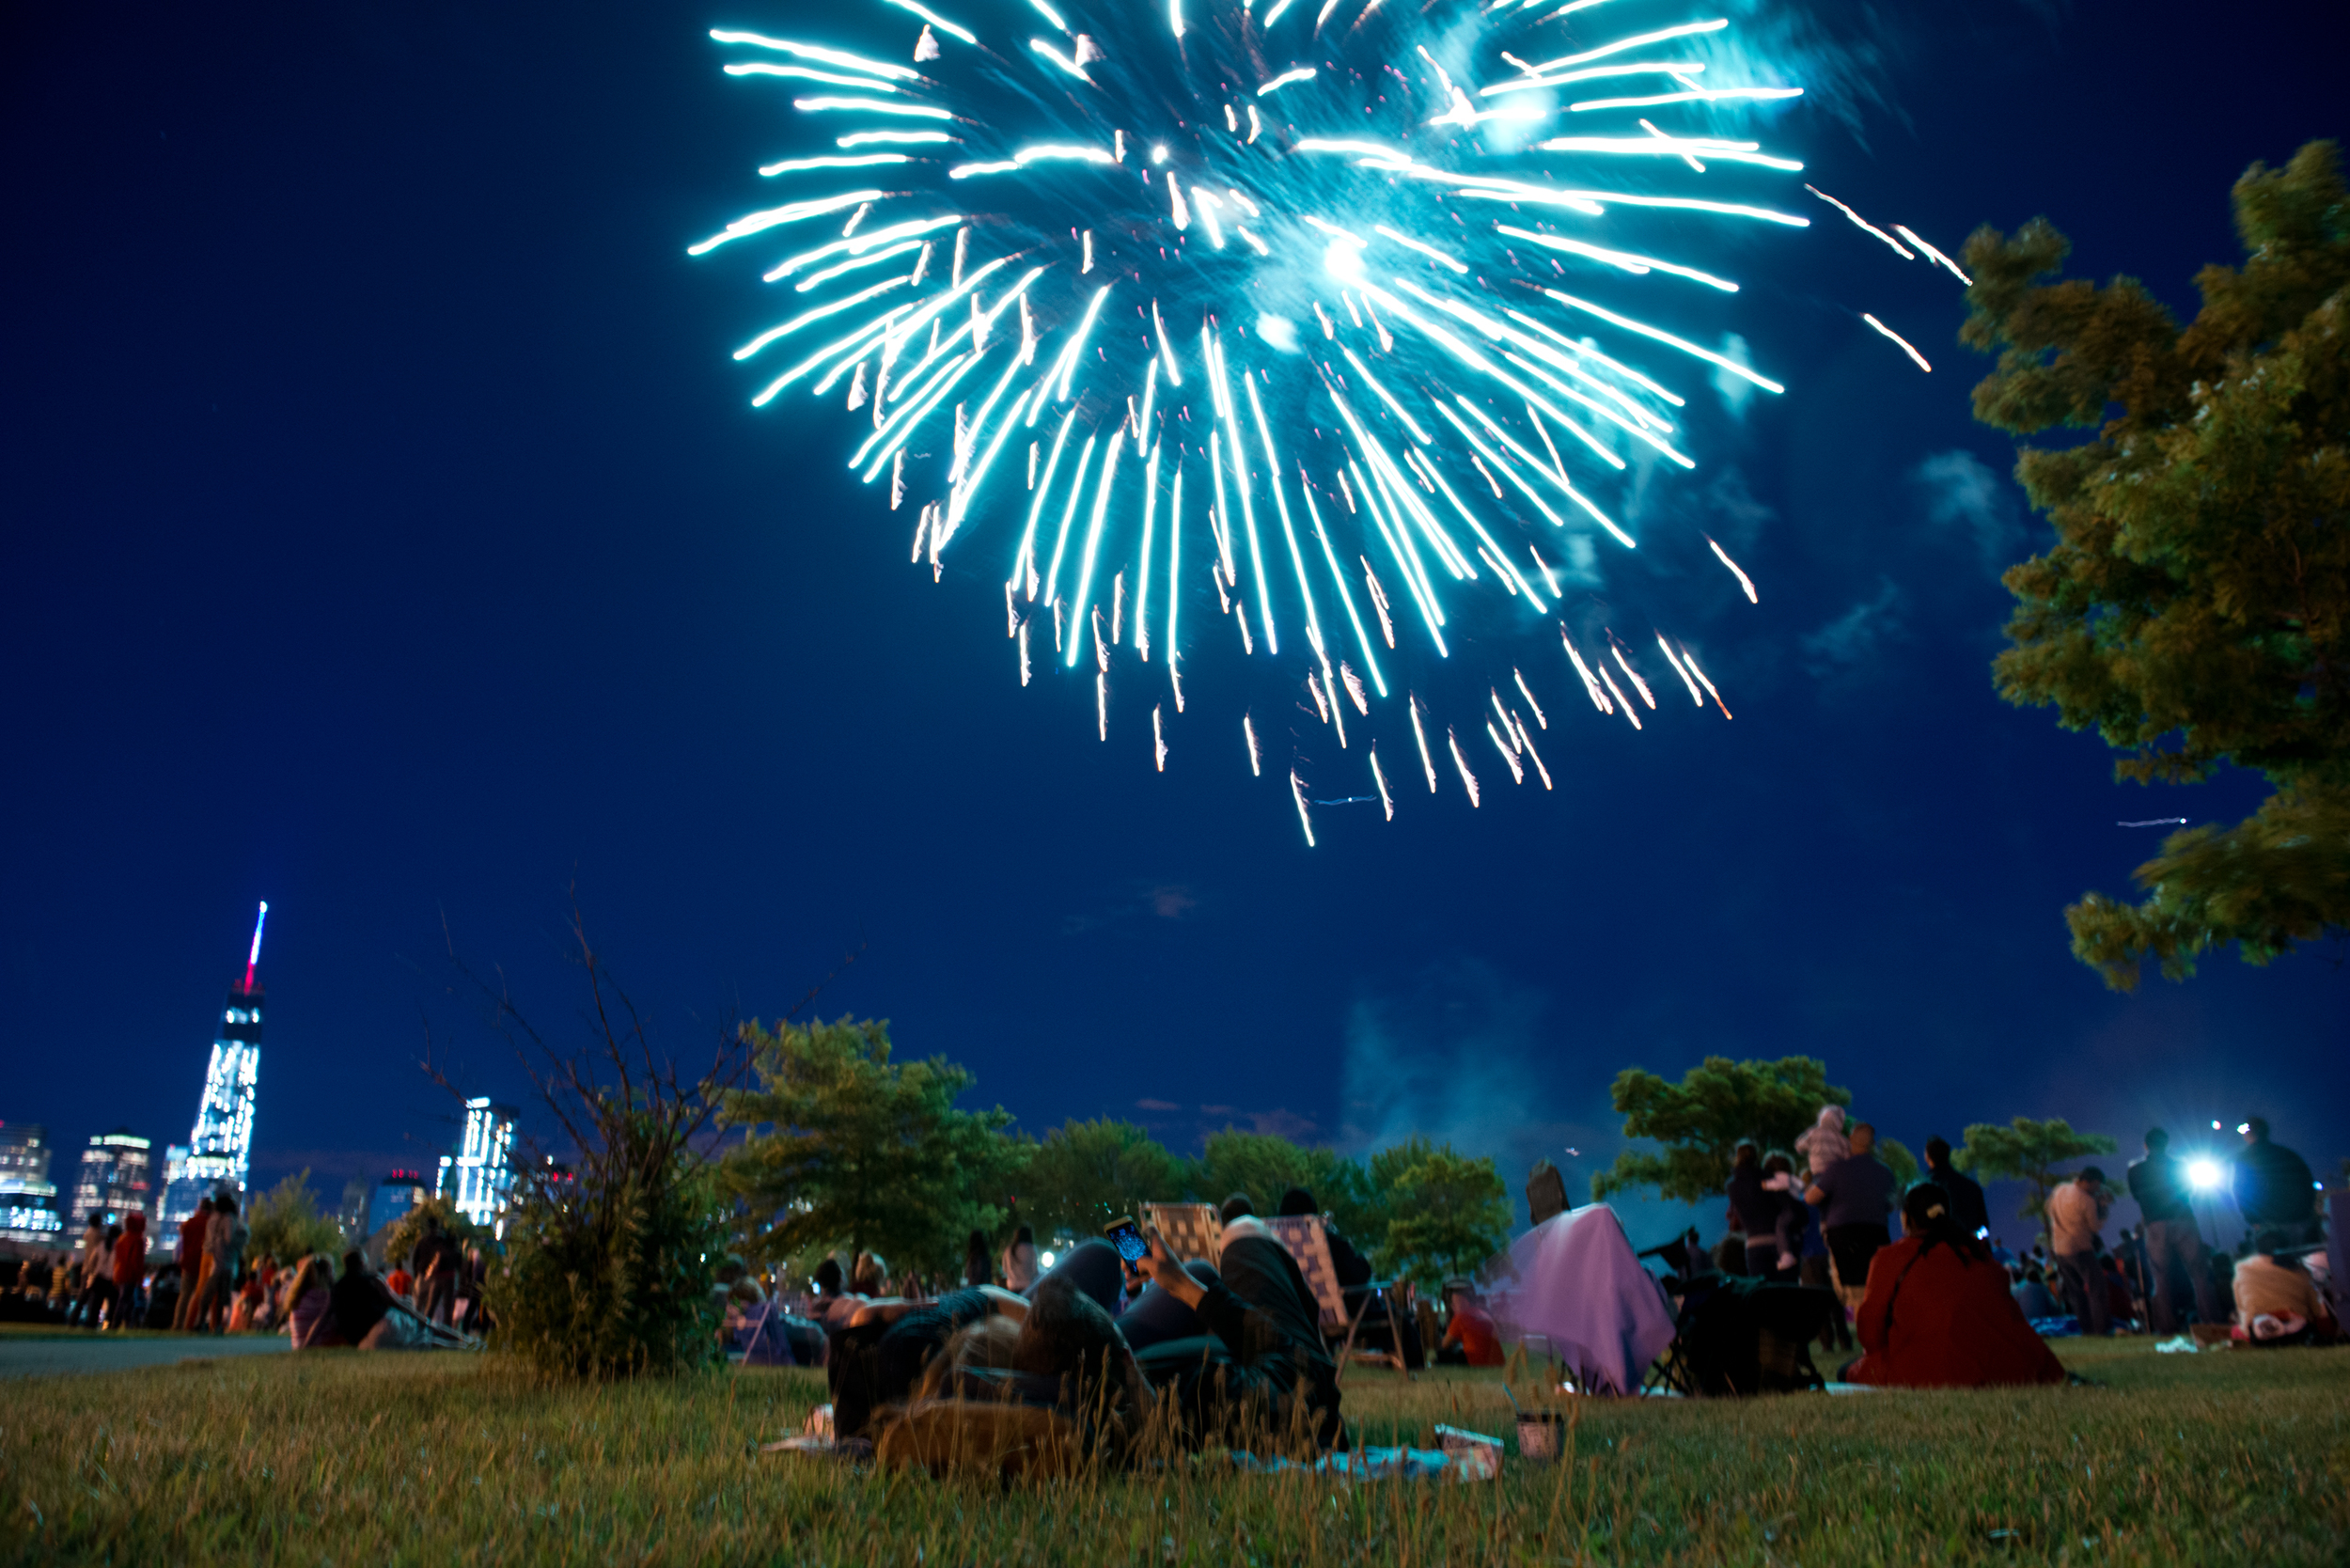 Budweiser Celebrates July 4th With Jersey City's Freedom & Fireworks Festival